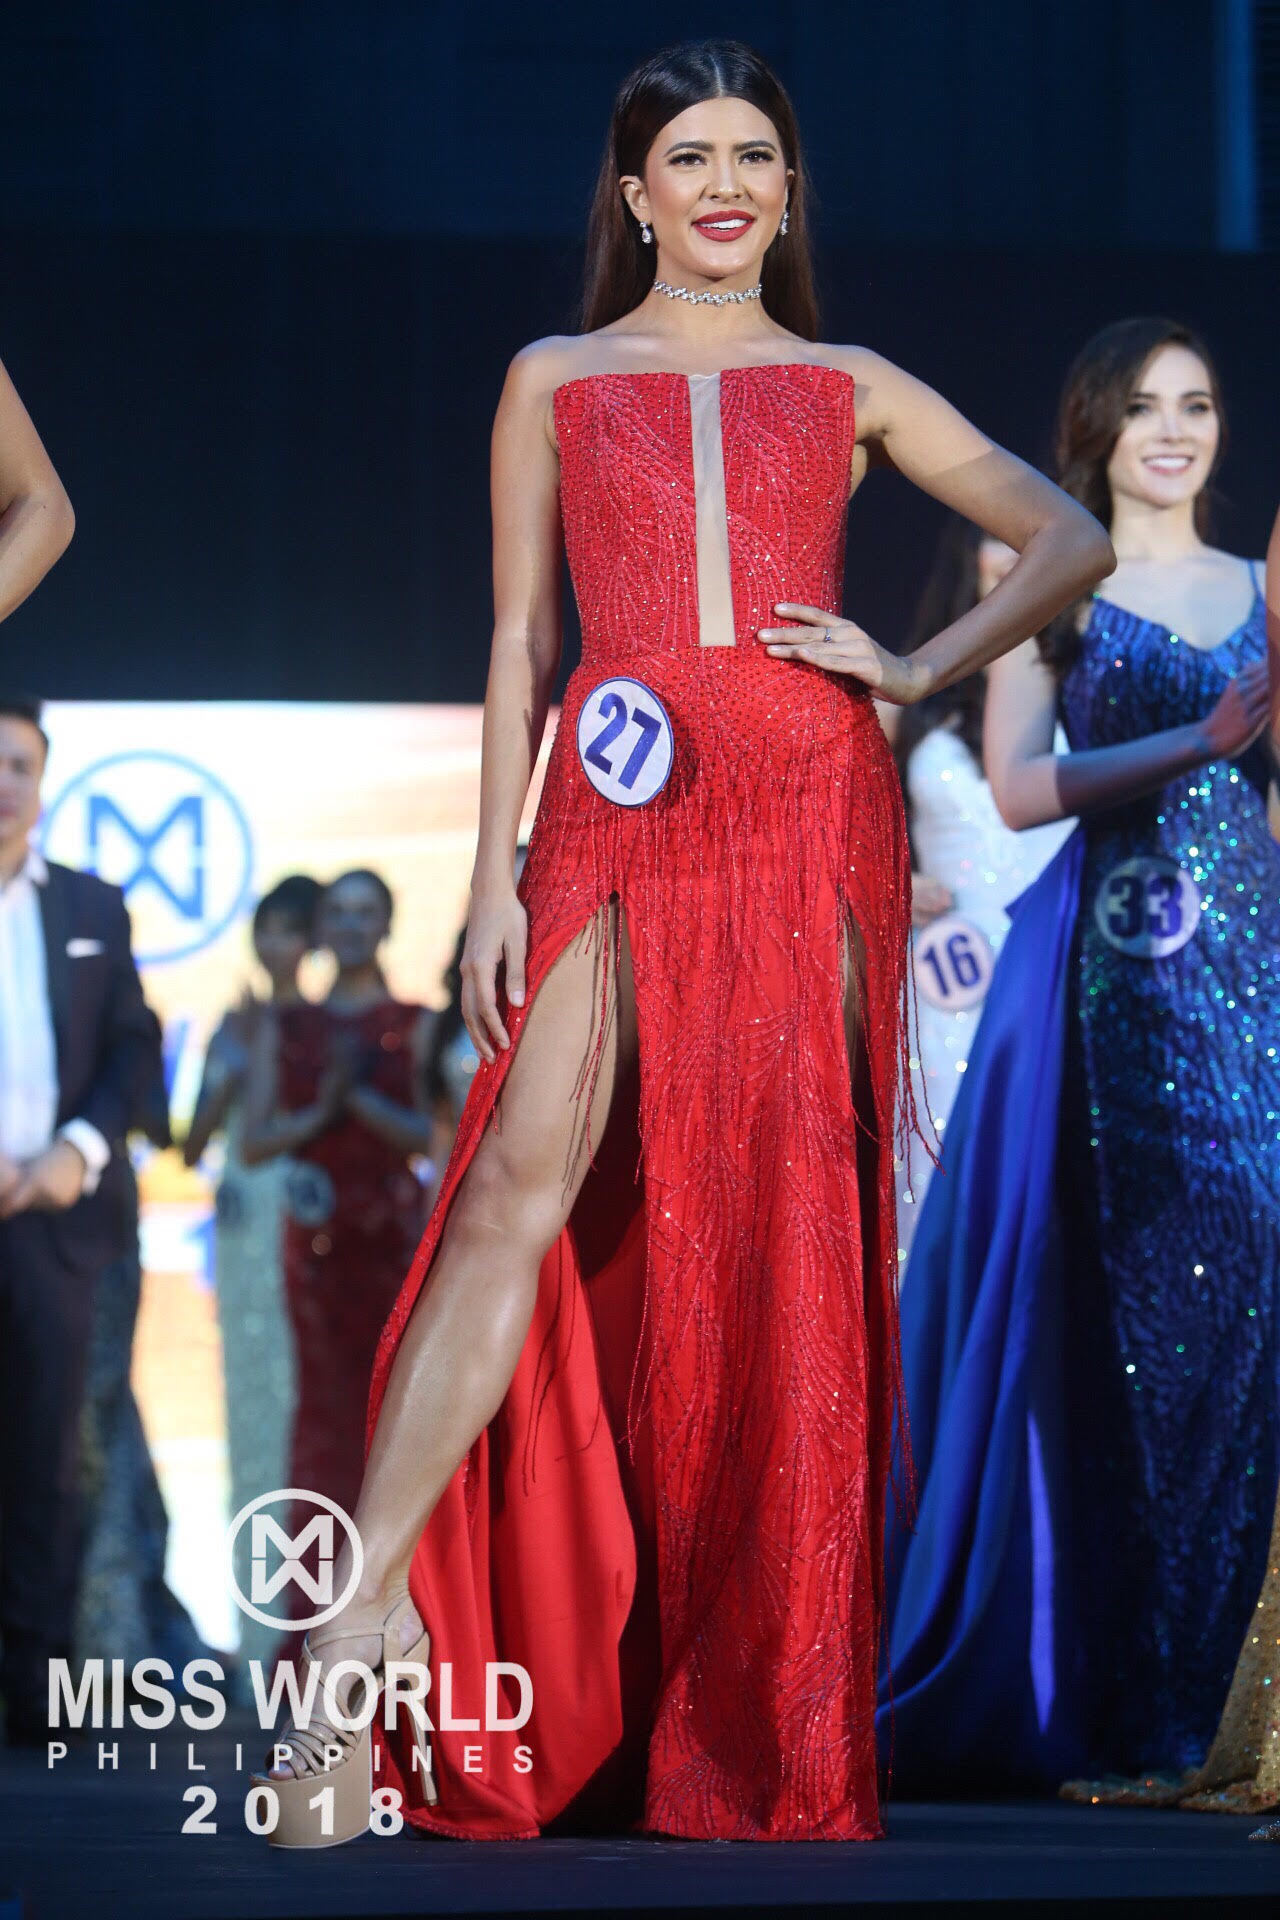 Photo from Miss World Philippines Organization